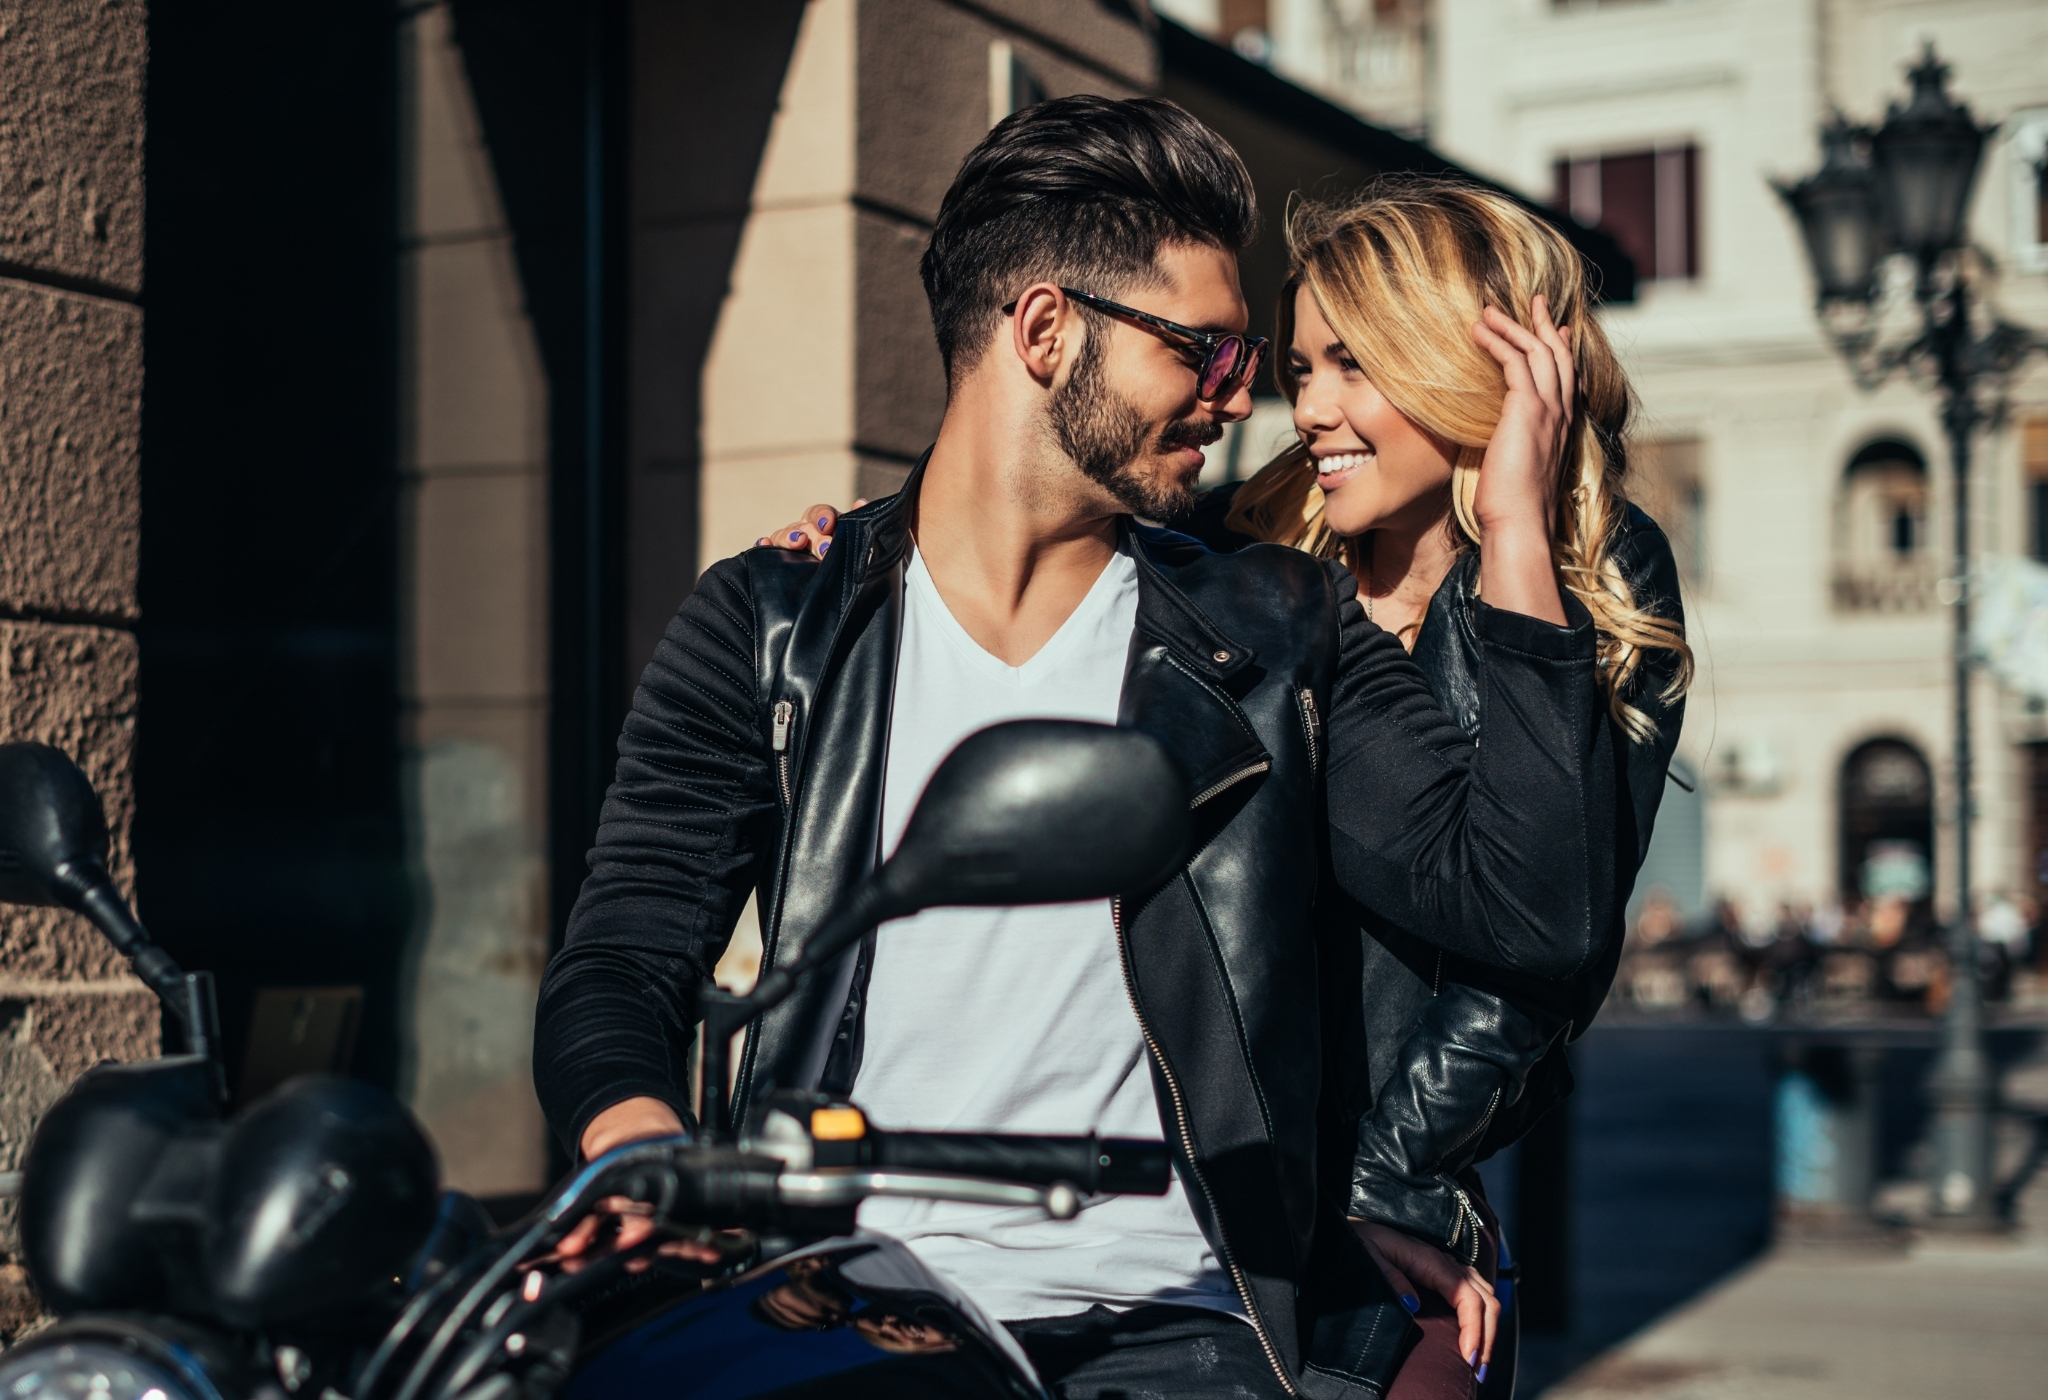 an attractive guy on a motorbike with a woman